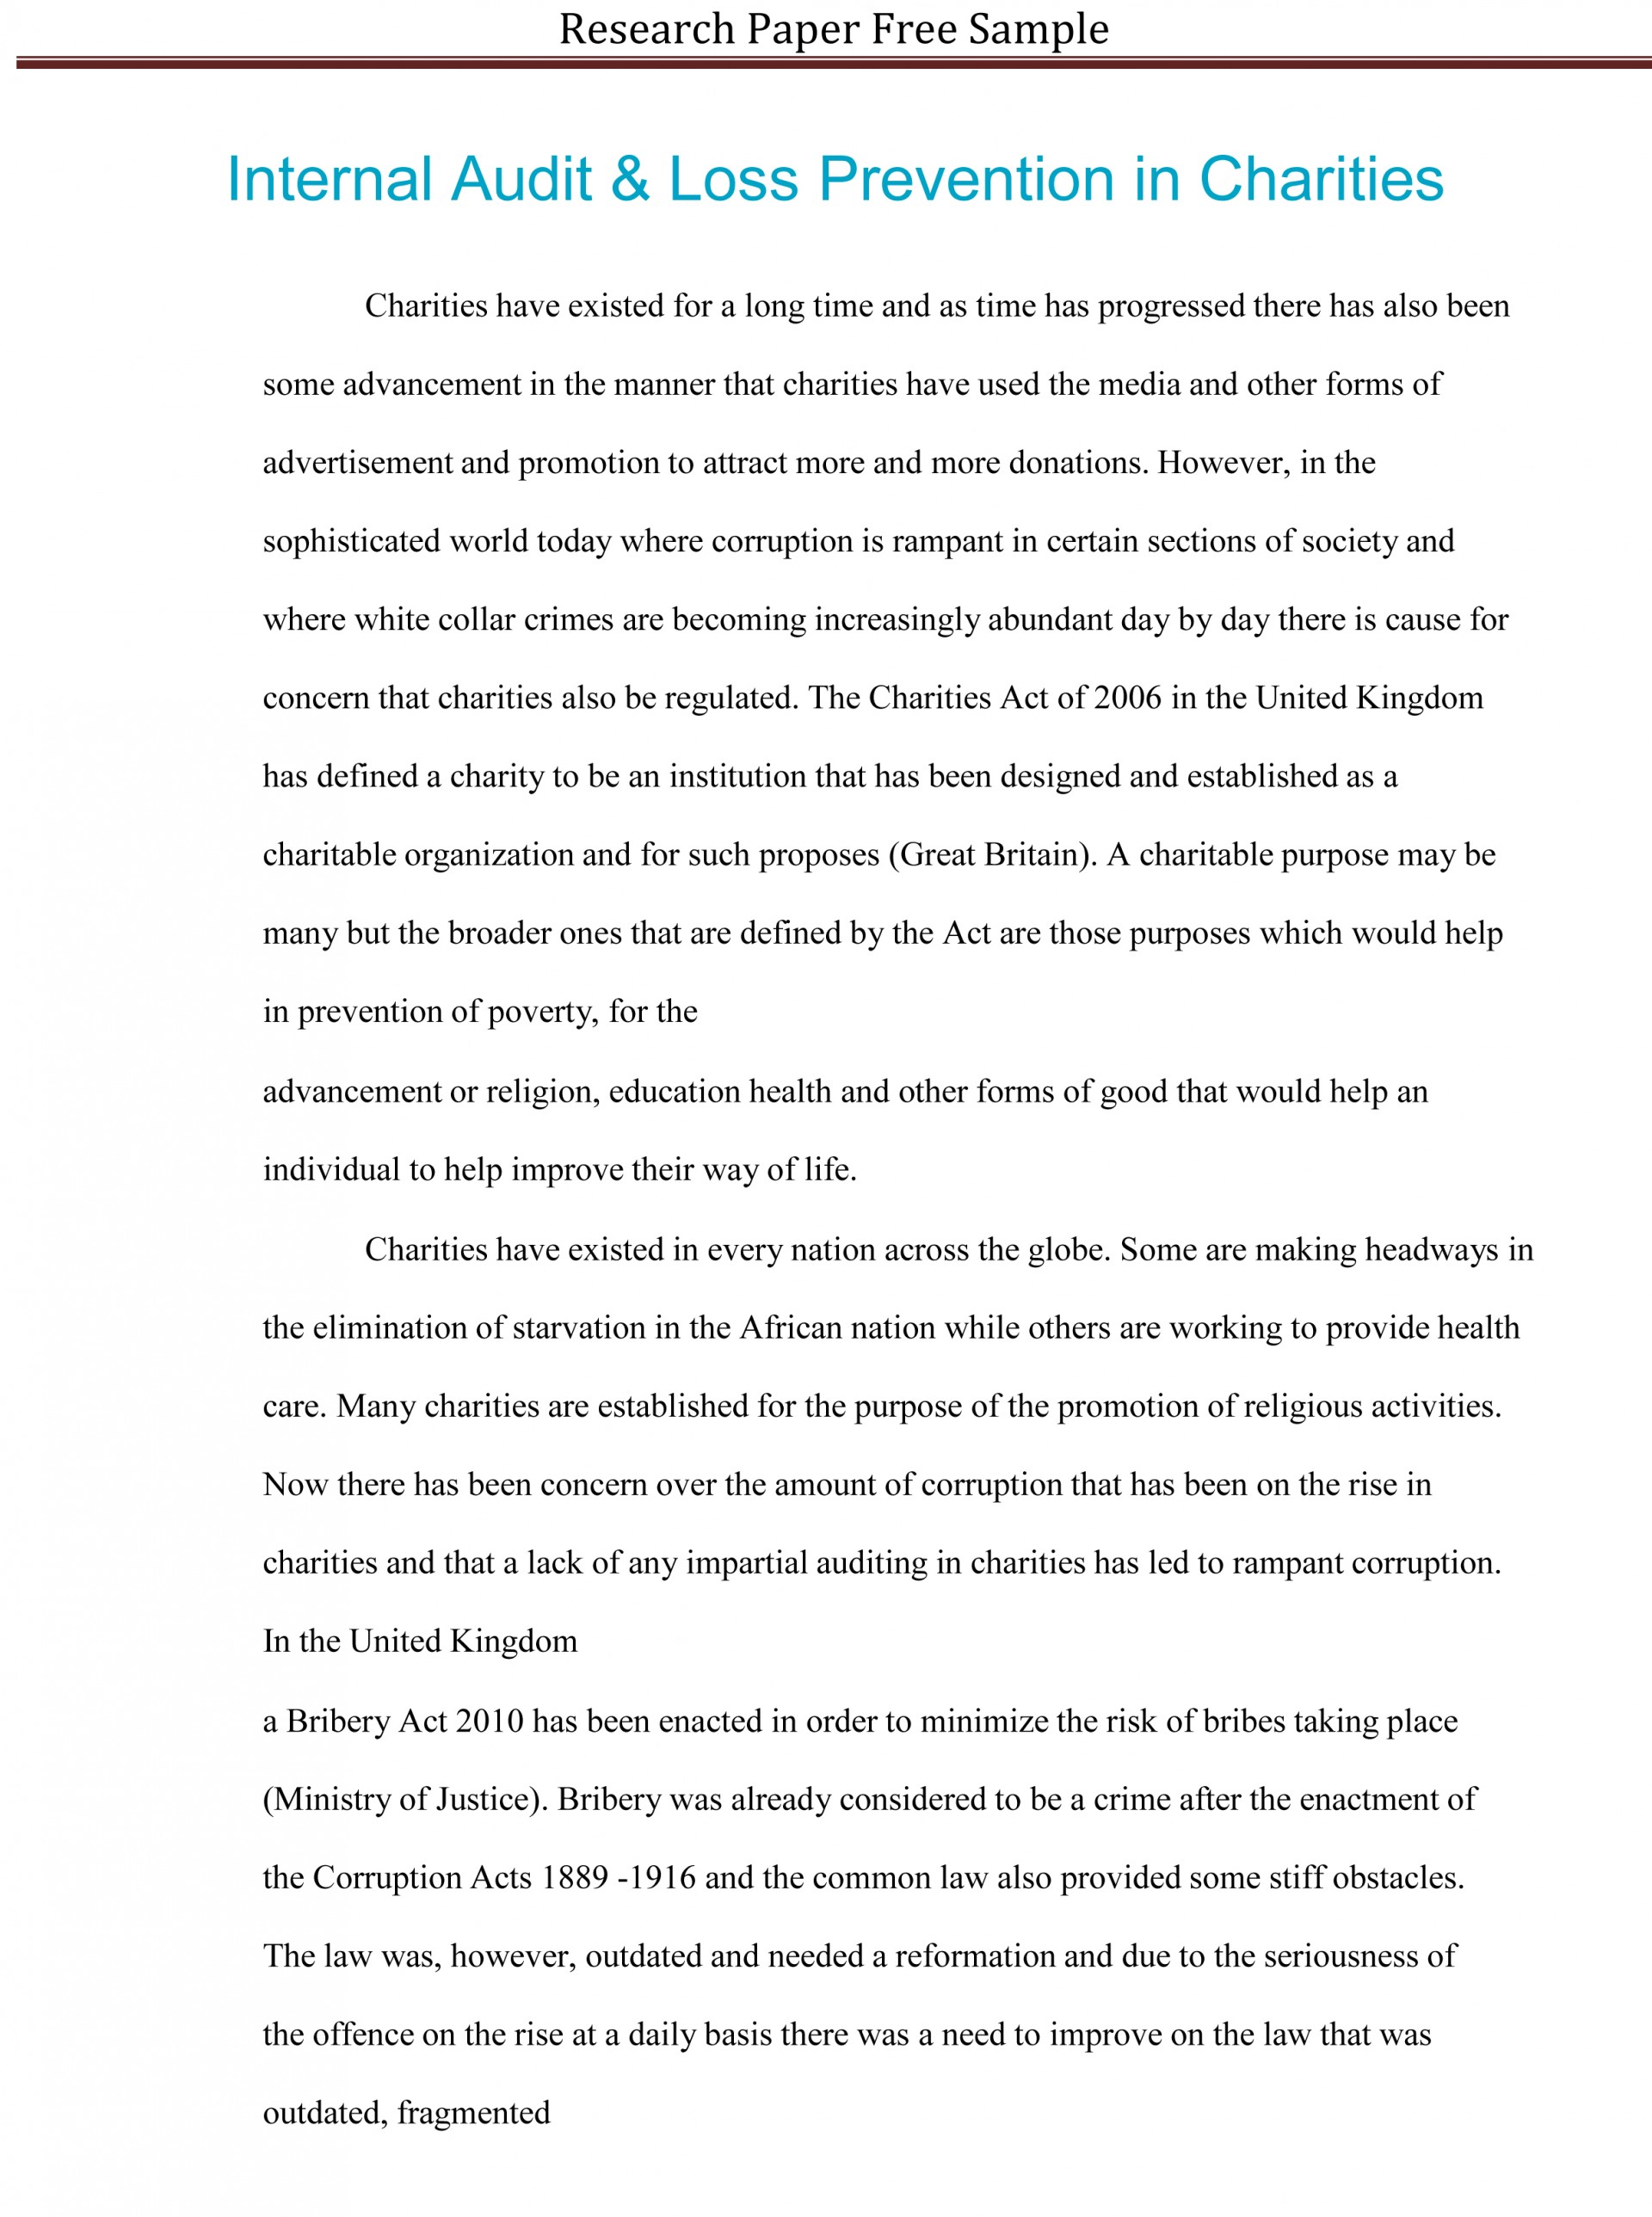 007 Research Paper Sample Essays Top Papers Terrorism Writer 1920